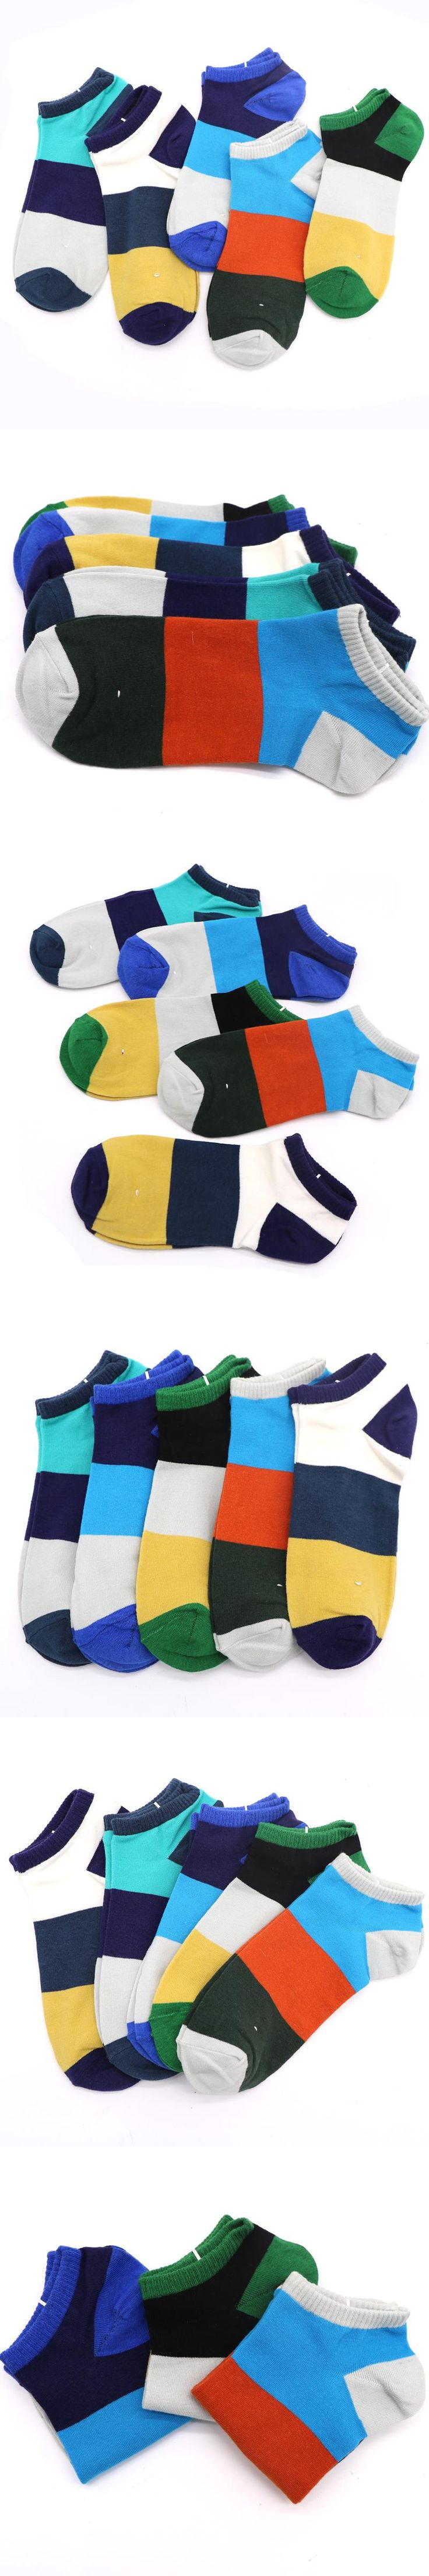 1Pair Striped Invisible Socks Short Men's Boat Socks Chaussette Male Low Cut Ankle Sock Dress Compression Sock Calcetines Hombre